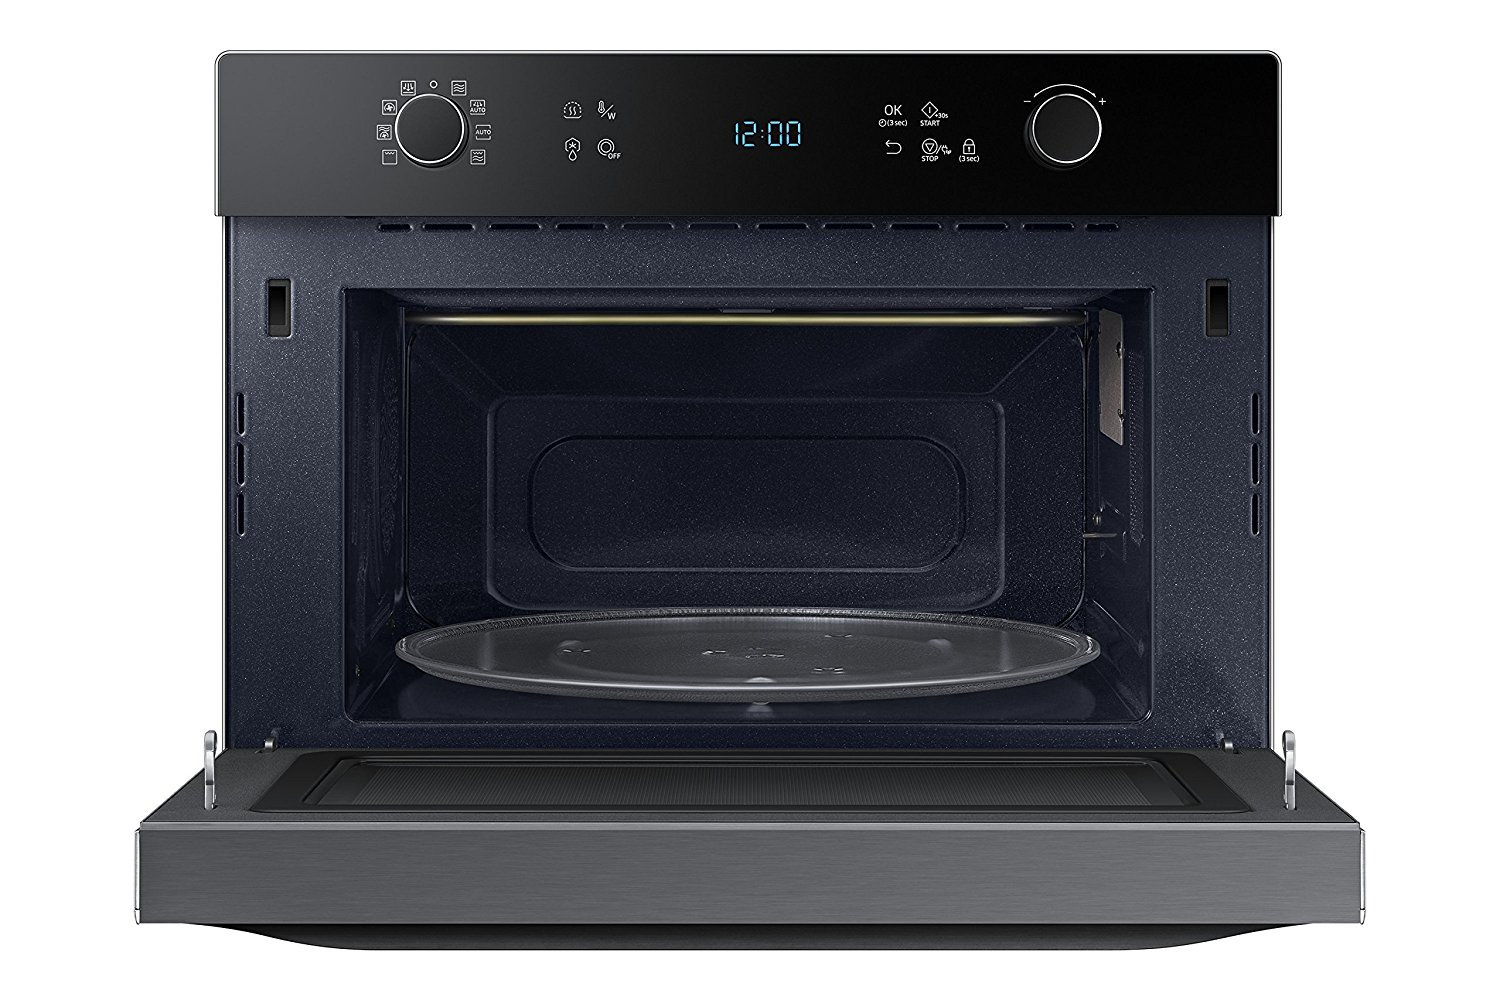 Samsung 35L microwave oven